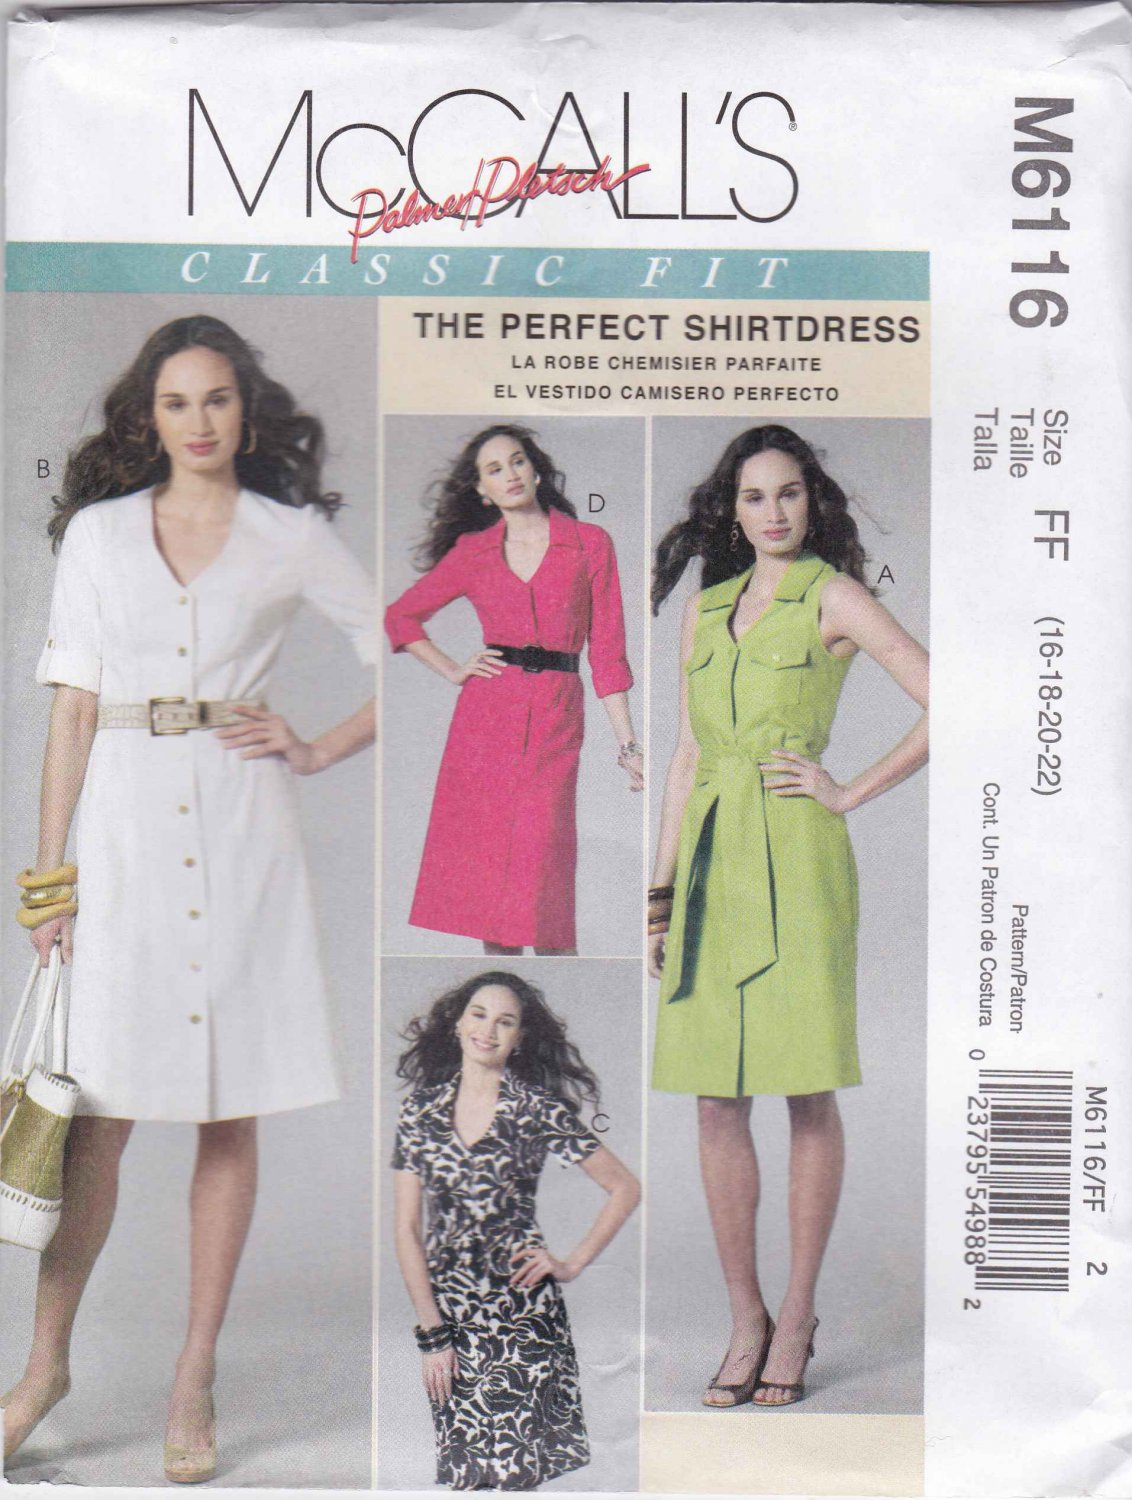 McCall's Sewing Pattern 6116 M6116 Misses Size 16-22 Classic Shirtdress Front Button Collar Options